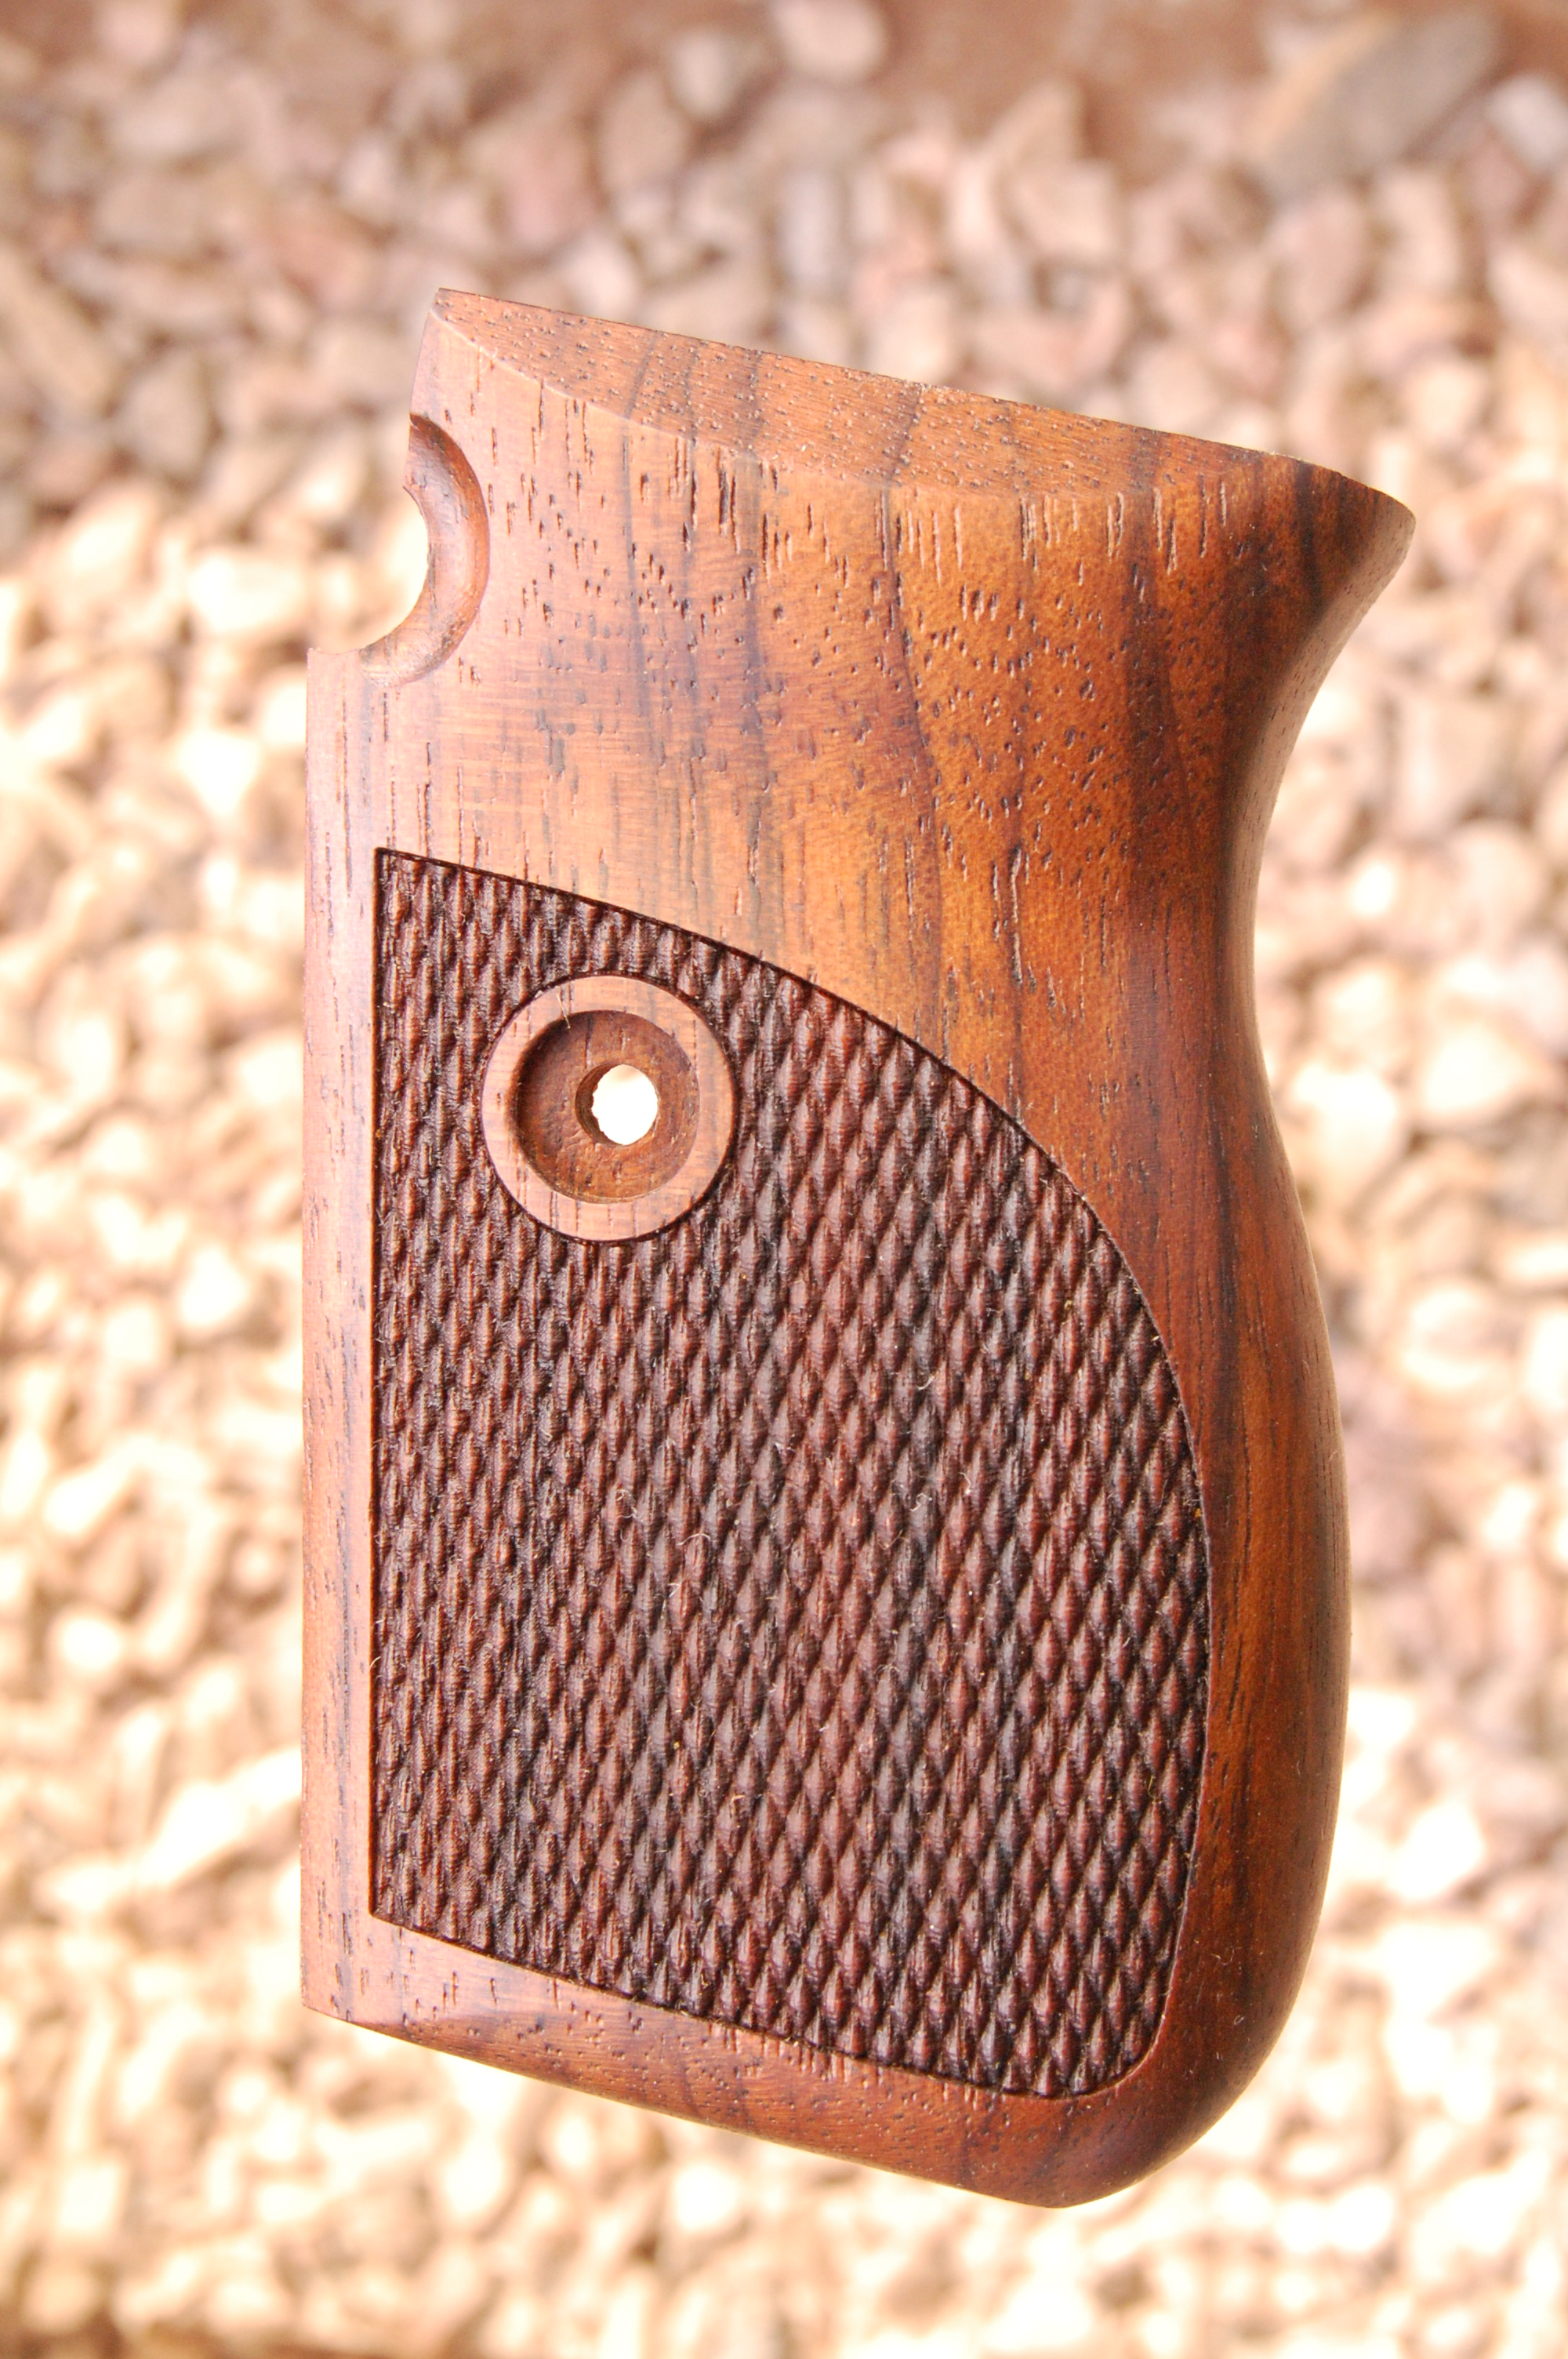 MAUSER 1914 grips (checkered) - full size